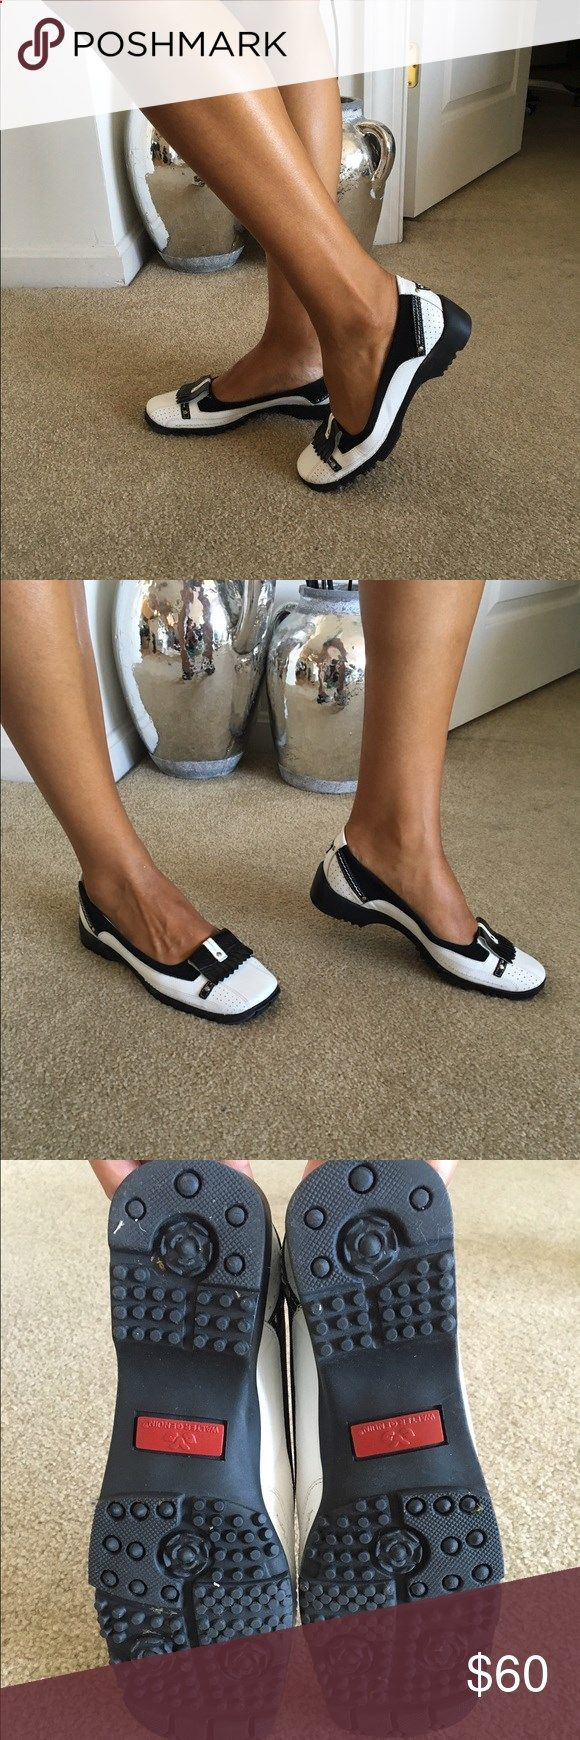 Lady Golf Shoes womens golf shoe Black and White Womens Golf shoes. Great grass traction, worn on turf 18 holes only Linea Stretch Shoes Athletic Shoes